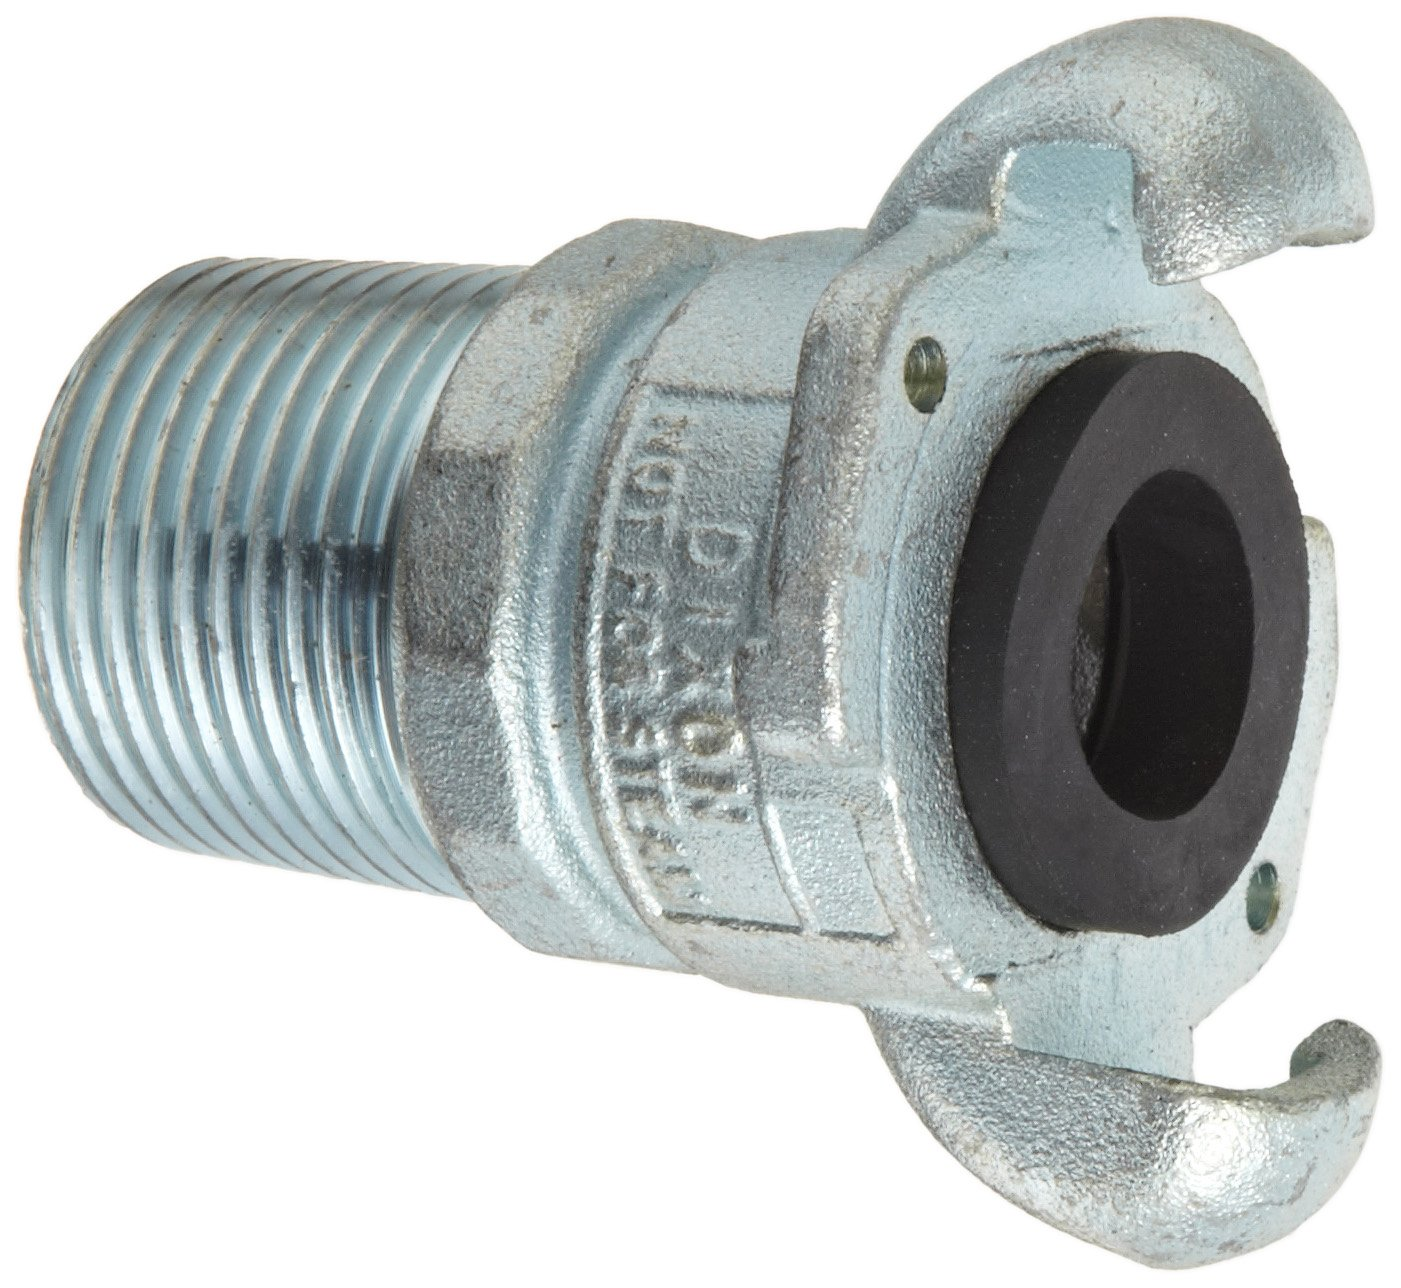 Dixon Valve & Coupling GAM12 Plated Steel Global Air Hose Fitting, King Universal Coupling, 1'' NPT Male by Dixon Valve & Coupling